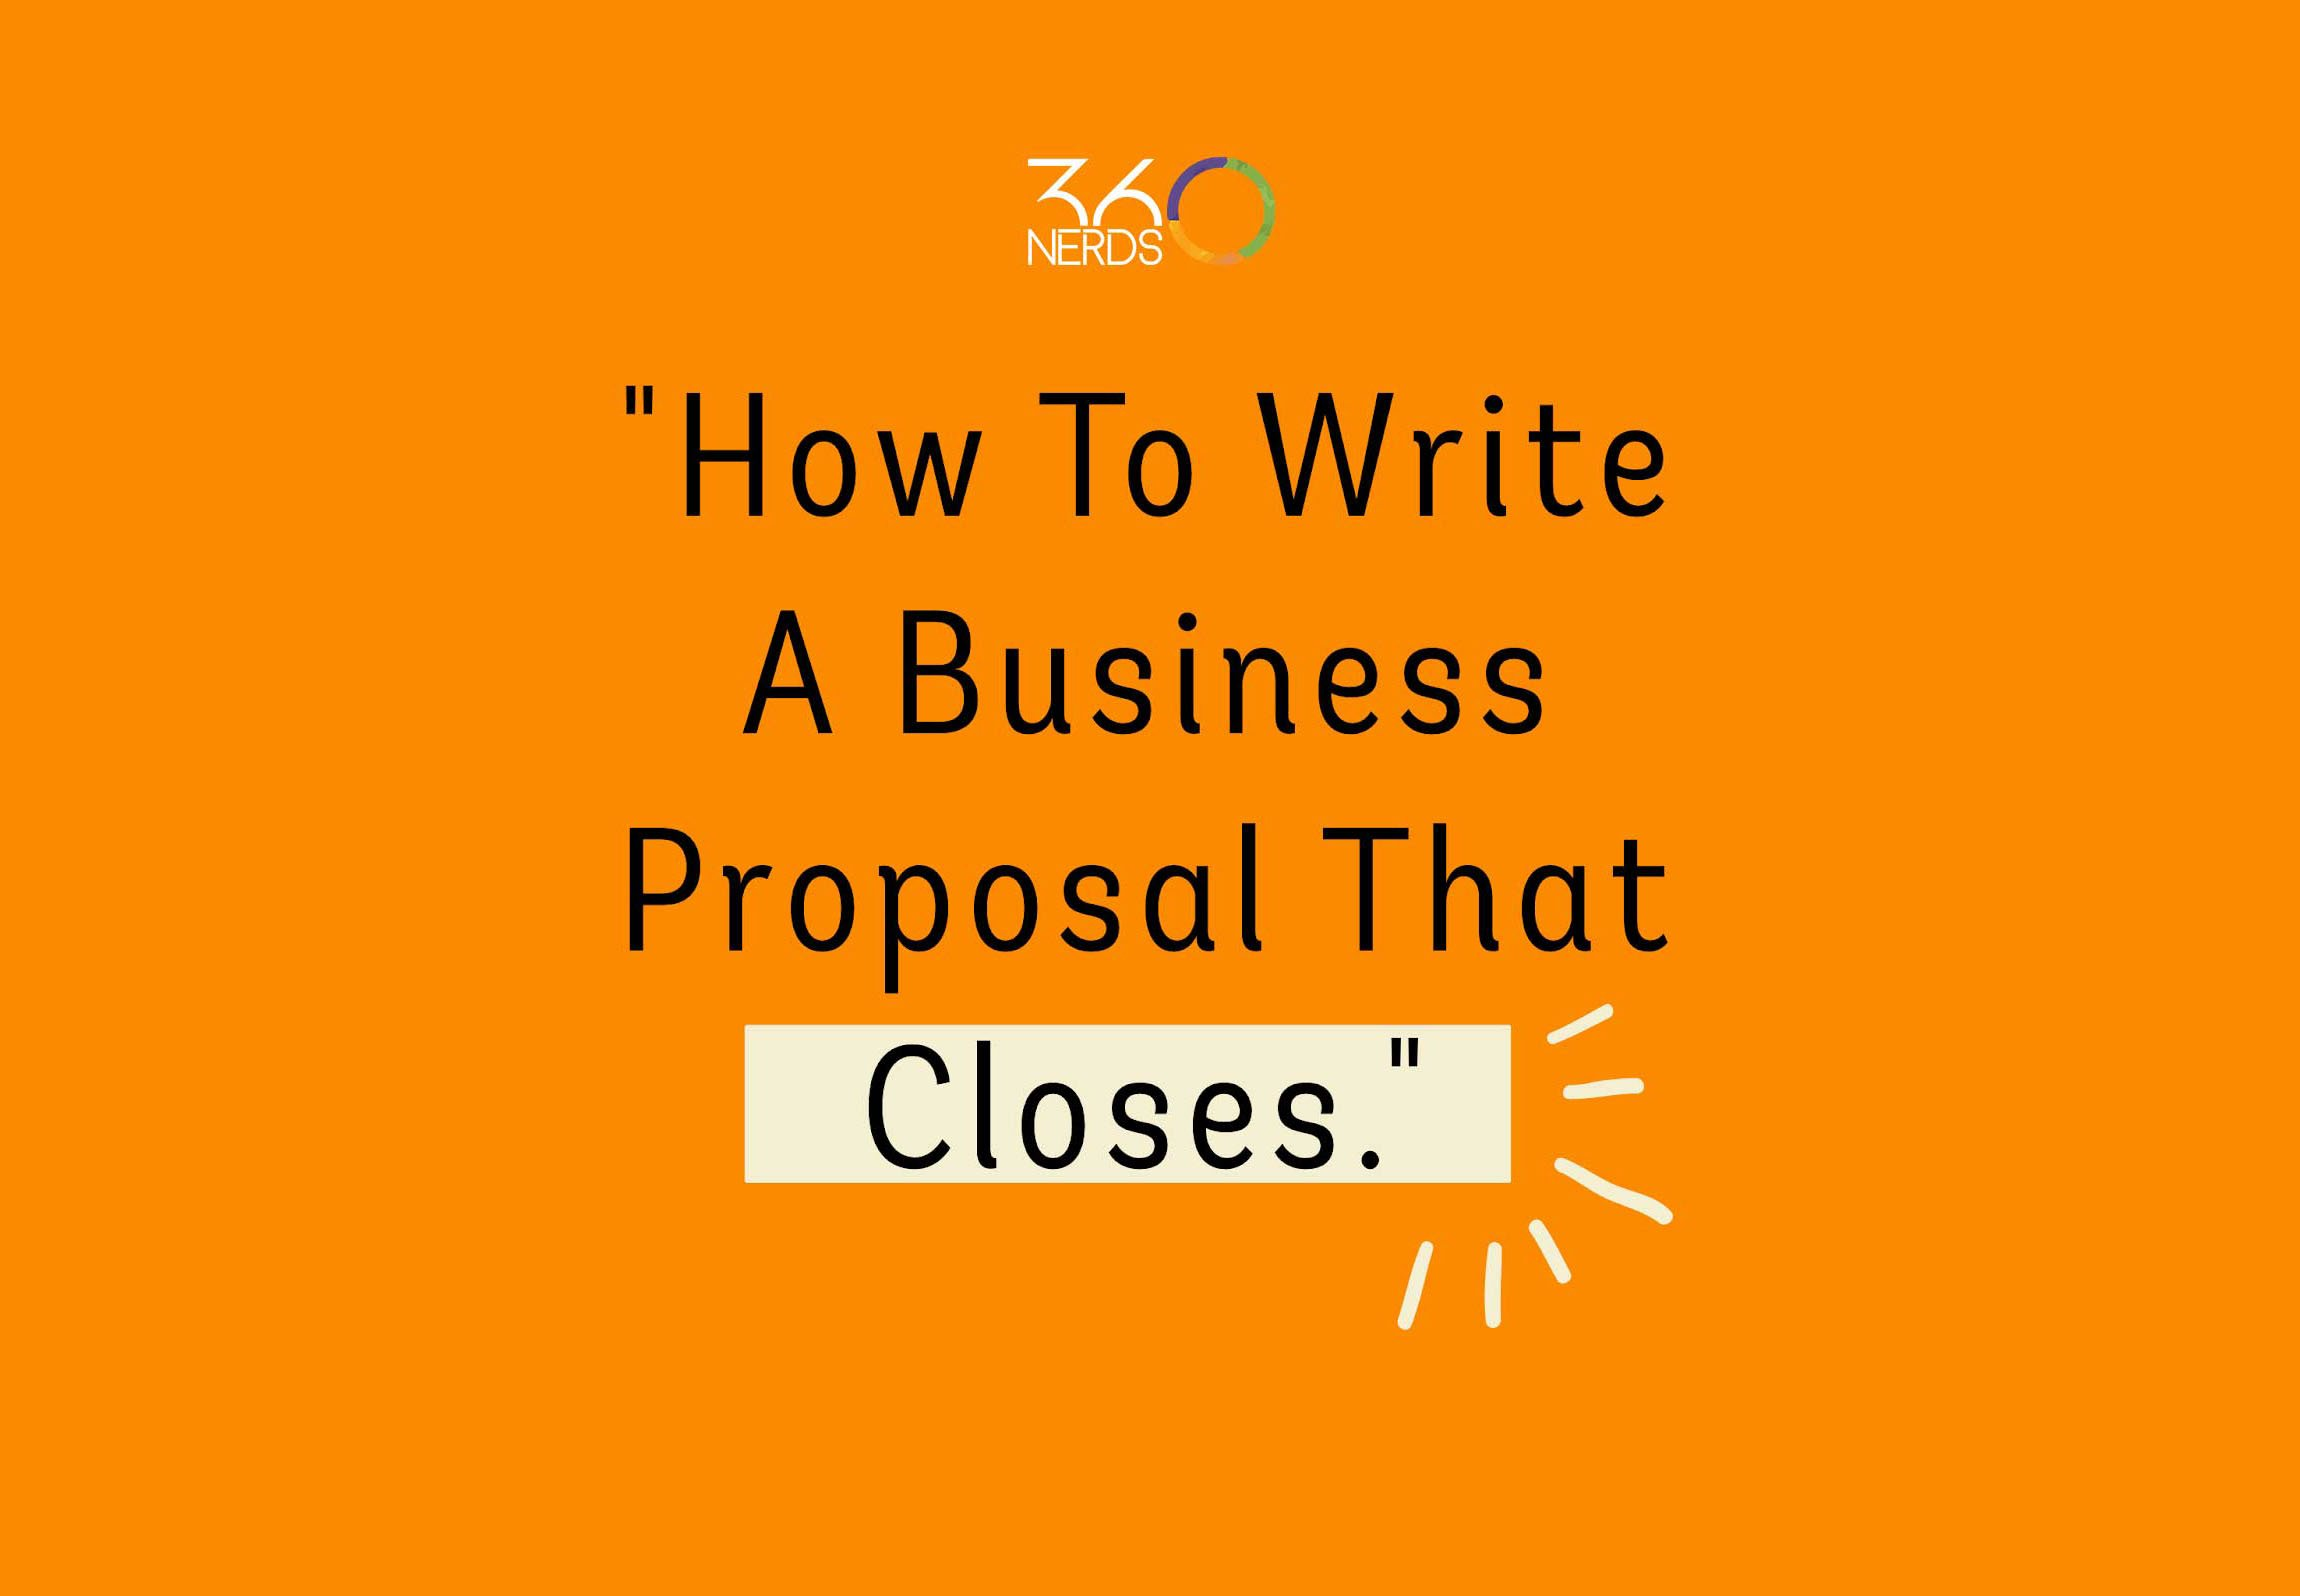 how-to-write-a-business-proposal-that-closes-featured-1x